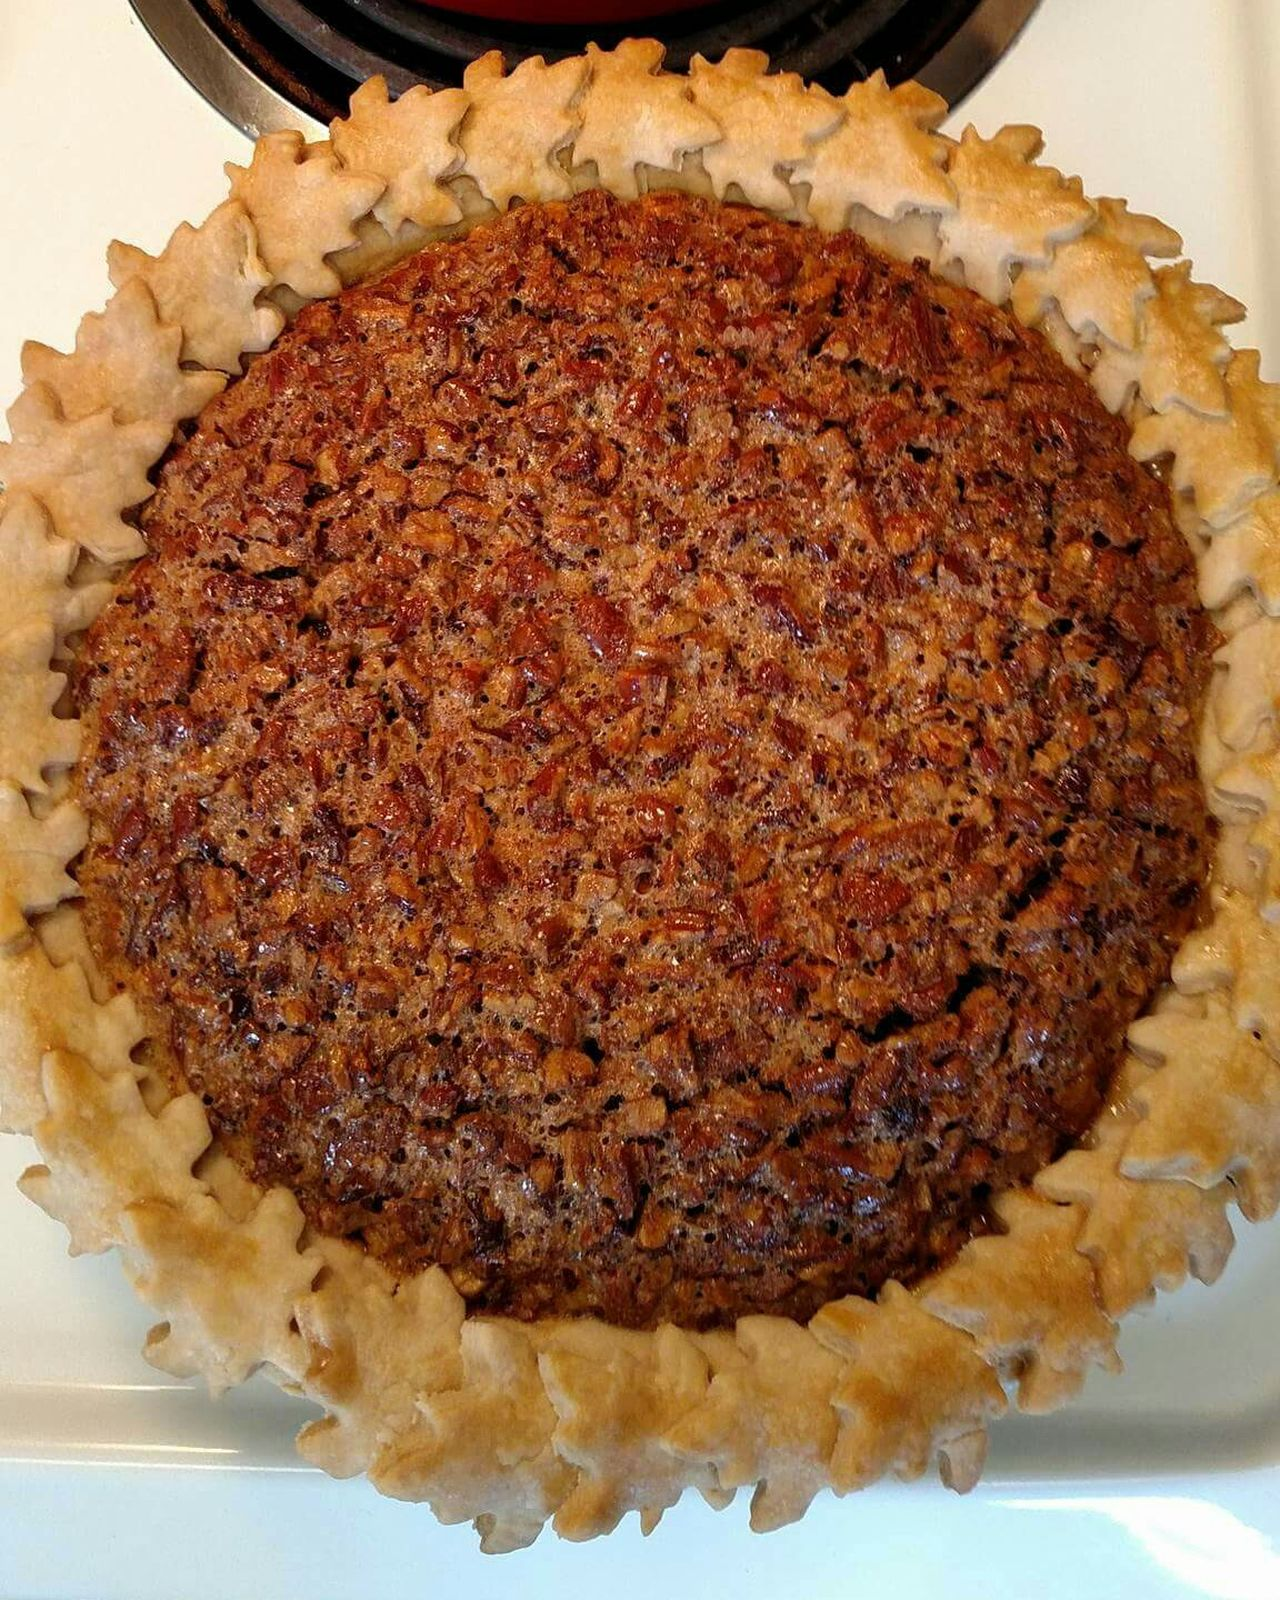 Foodporn Foodphotography My World Of Food Yummy Food Photography Things I Love The Purist (no Edit, No Filter) Food Porn Homemade Pie Homemade Happy Thanksgiving Pecan Pie